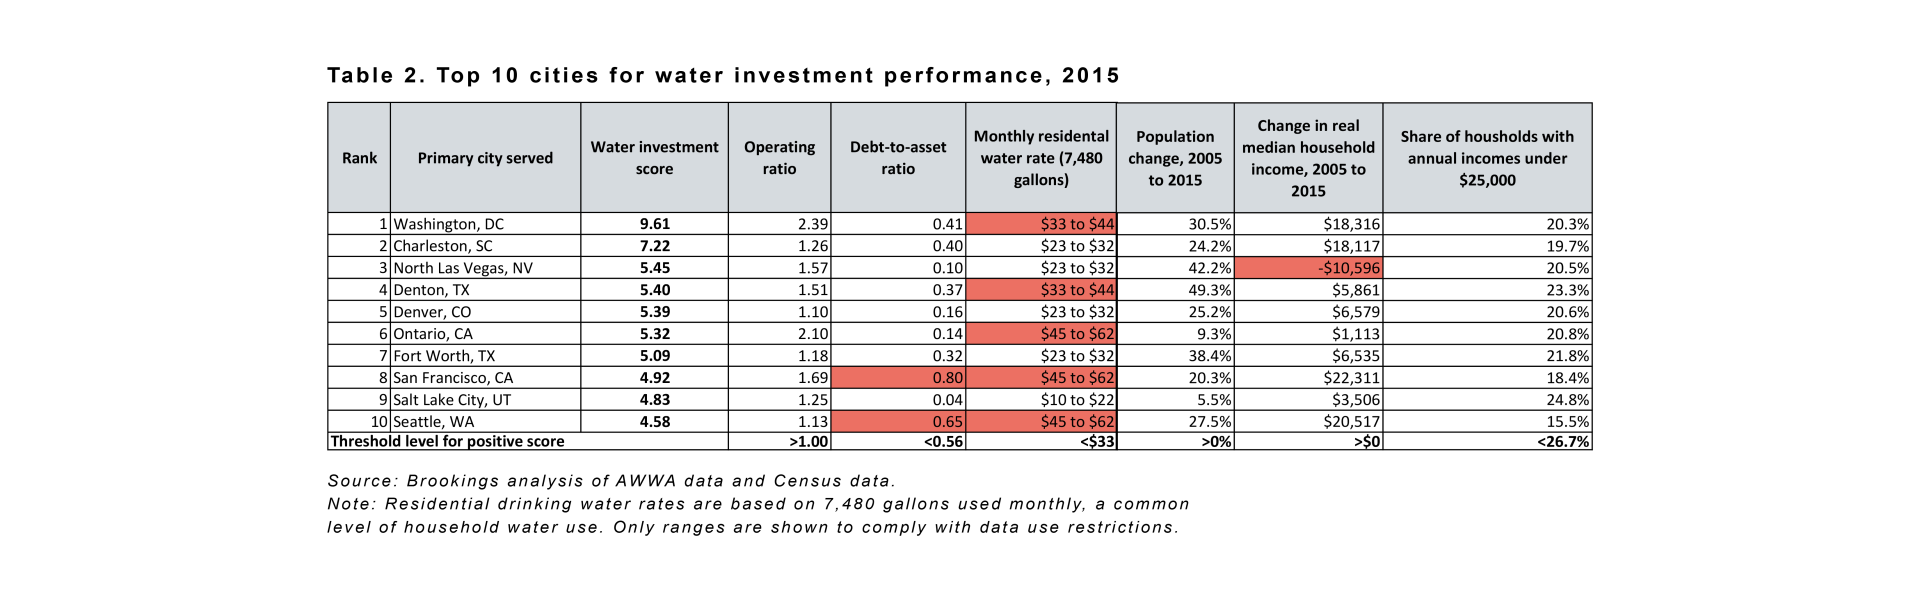 metro_20161213_waterinvestbrief_table 2-1